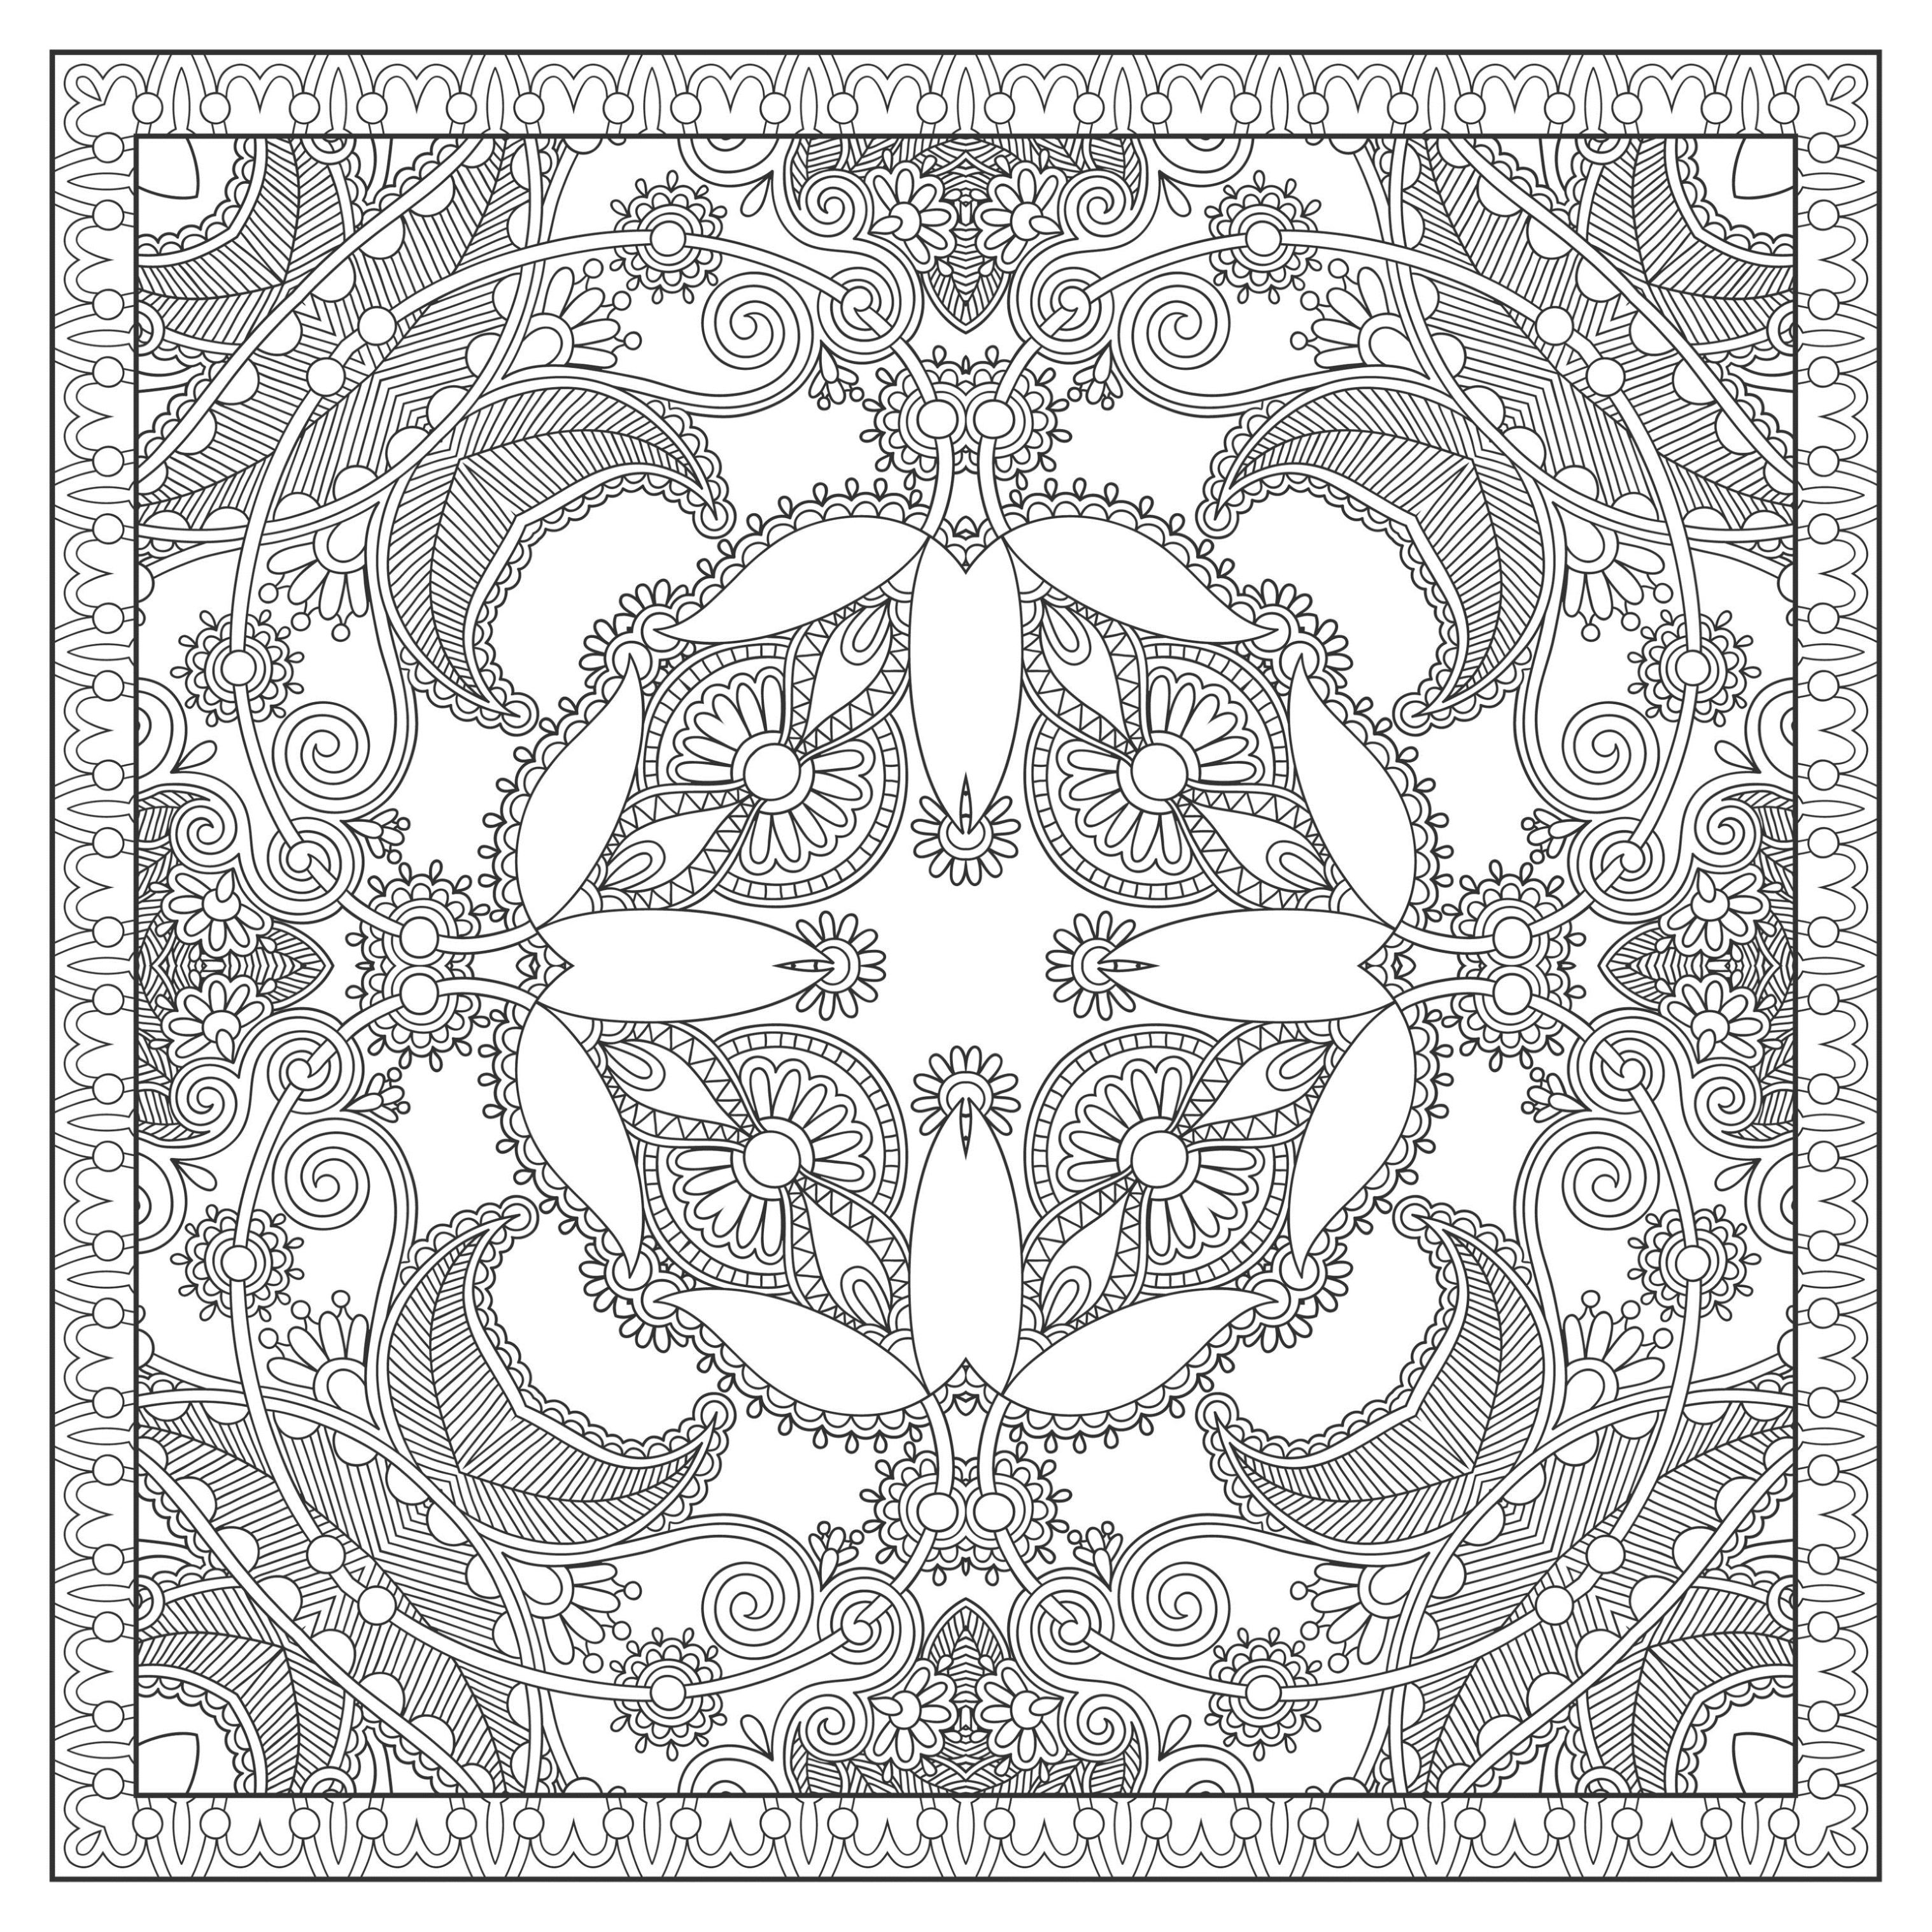 Difficult Square Mandala drawing inspired by nature, by Karakotsya. In this Mandala, the vegetal world is perfectly integrated. Print it for free and color it ! You must clear your mind and allow yourself to forget all your worries and responsibilities.